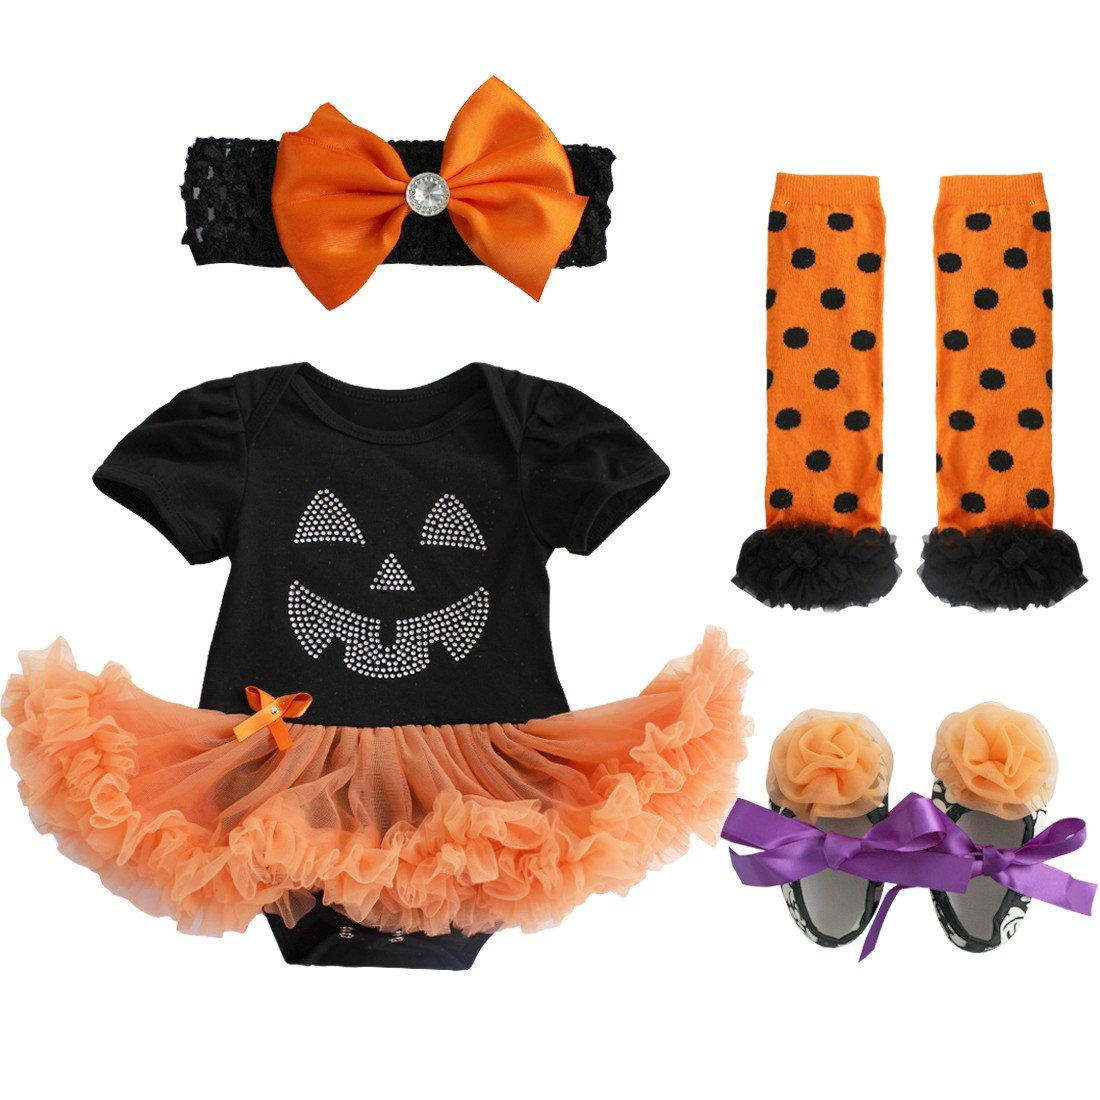 iiniim Baby Girl's Halloween Pumpkin Tutu Romper Outfits Headband Leg Warmer Shoes